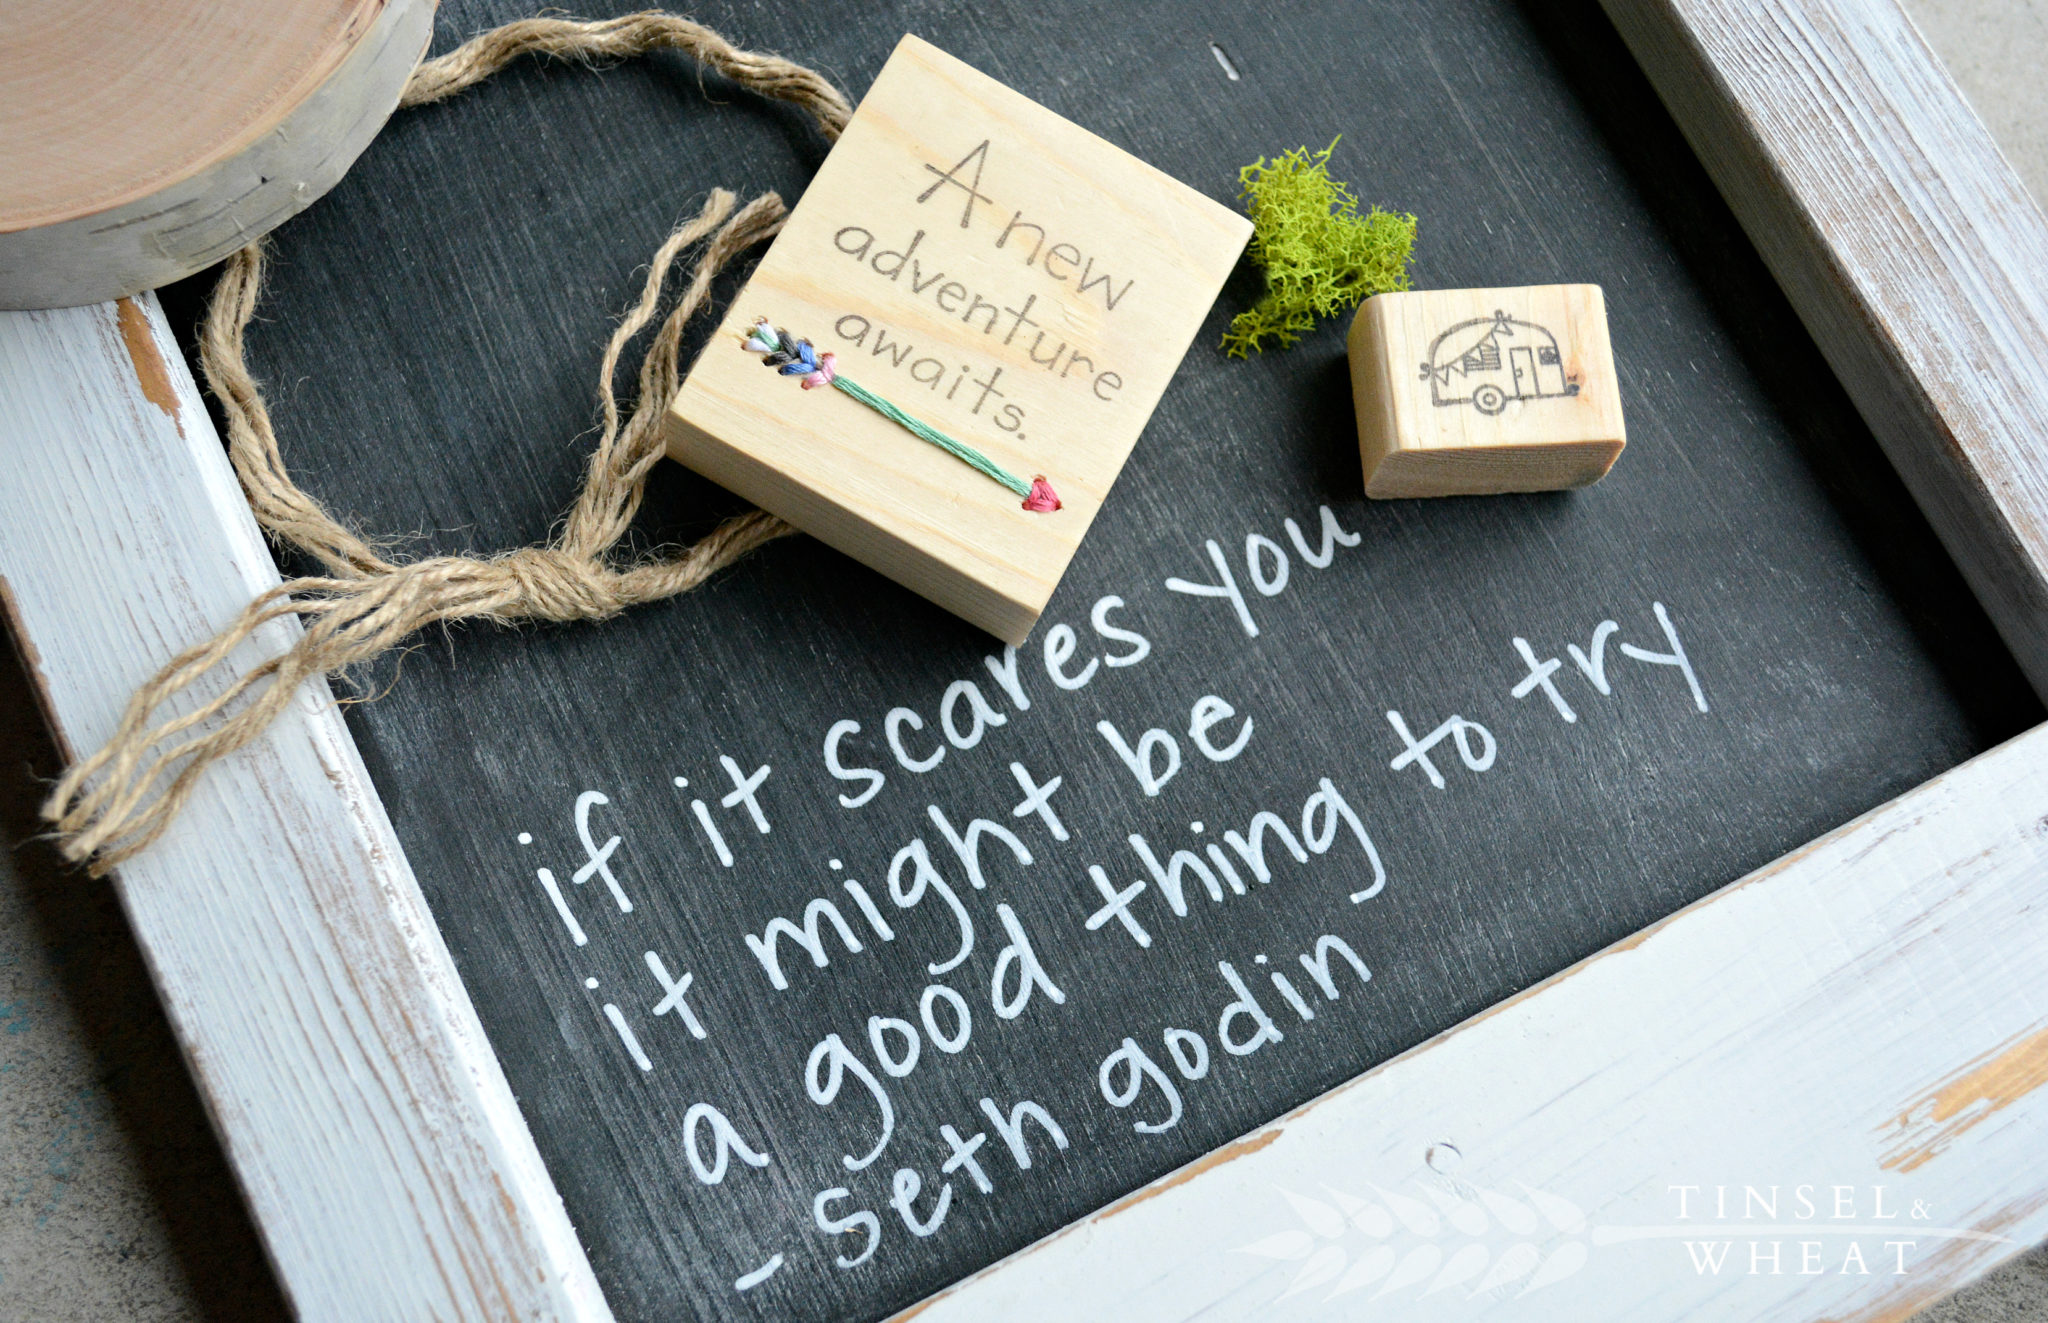 If it scares you it might be a good thing to try quote